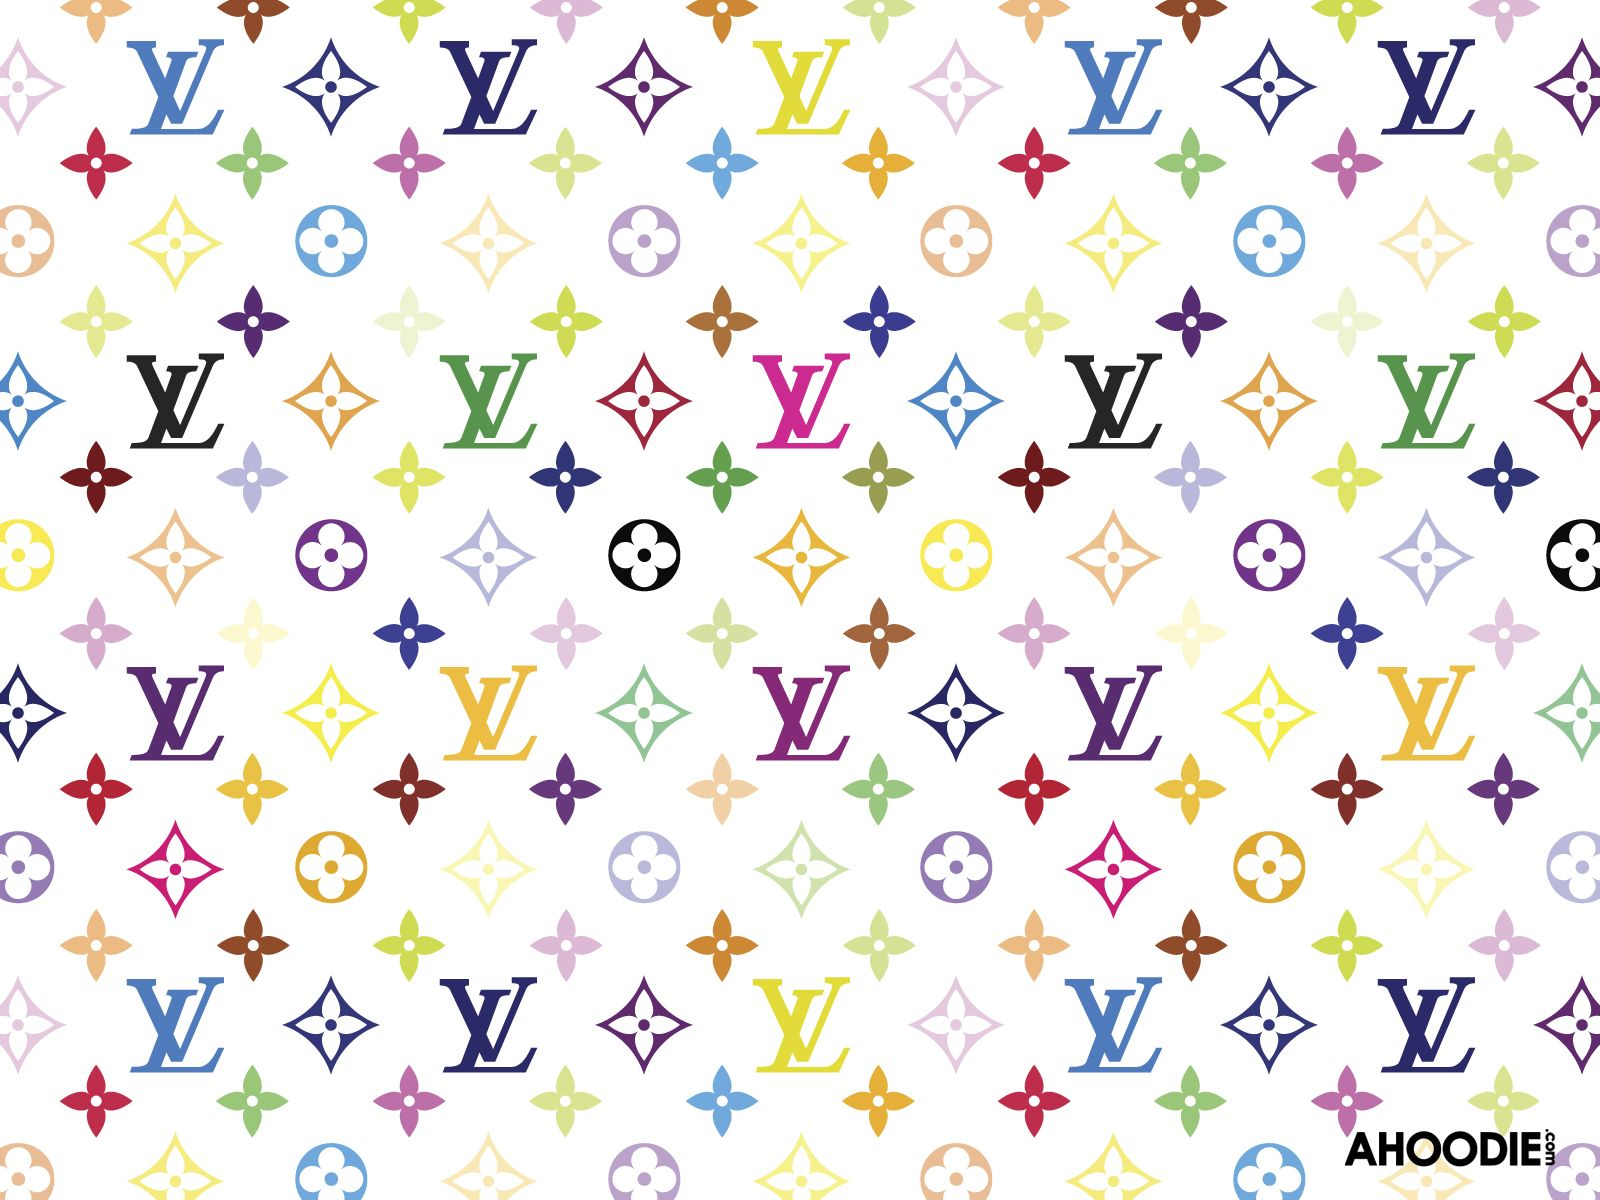 Wallpaper iphone louis vuitton - Louis Vuitton Logo Wallpaper Louis Vuitton Lv Multi Color Wallpaper11 1600 1200 With Resolutions